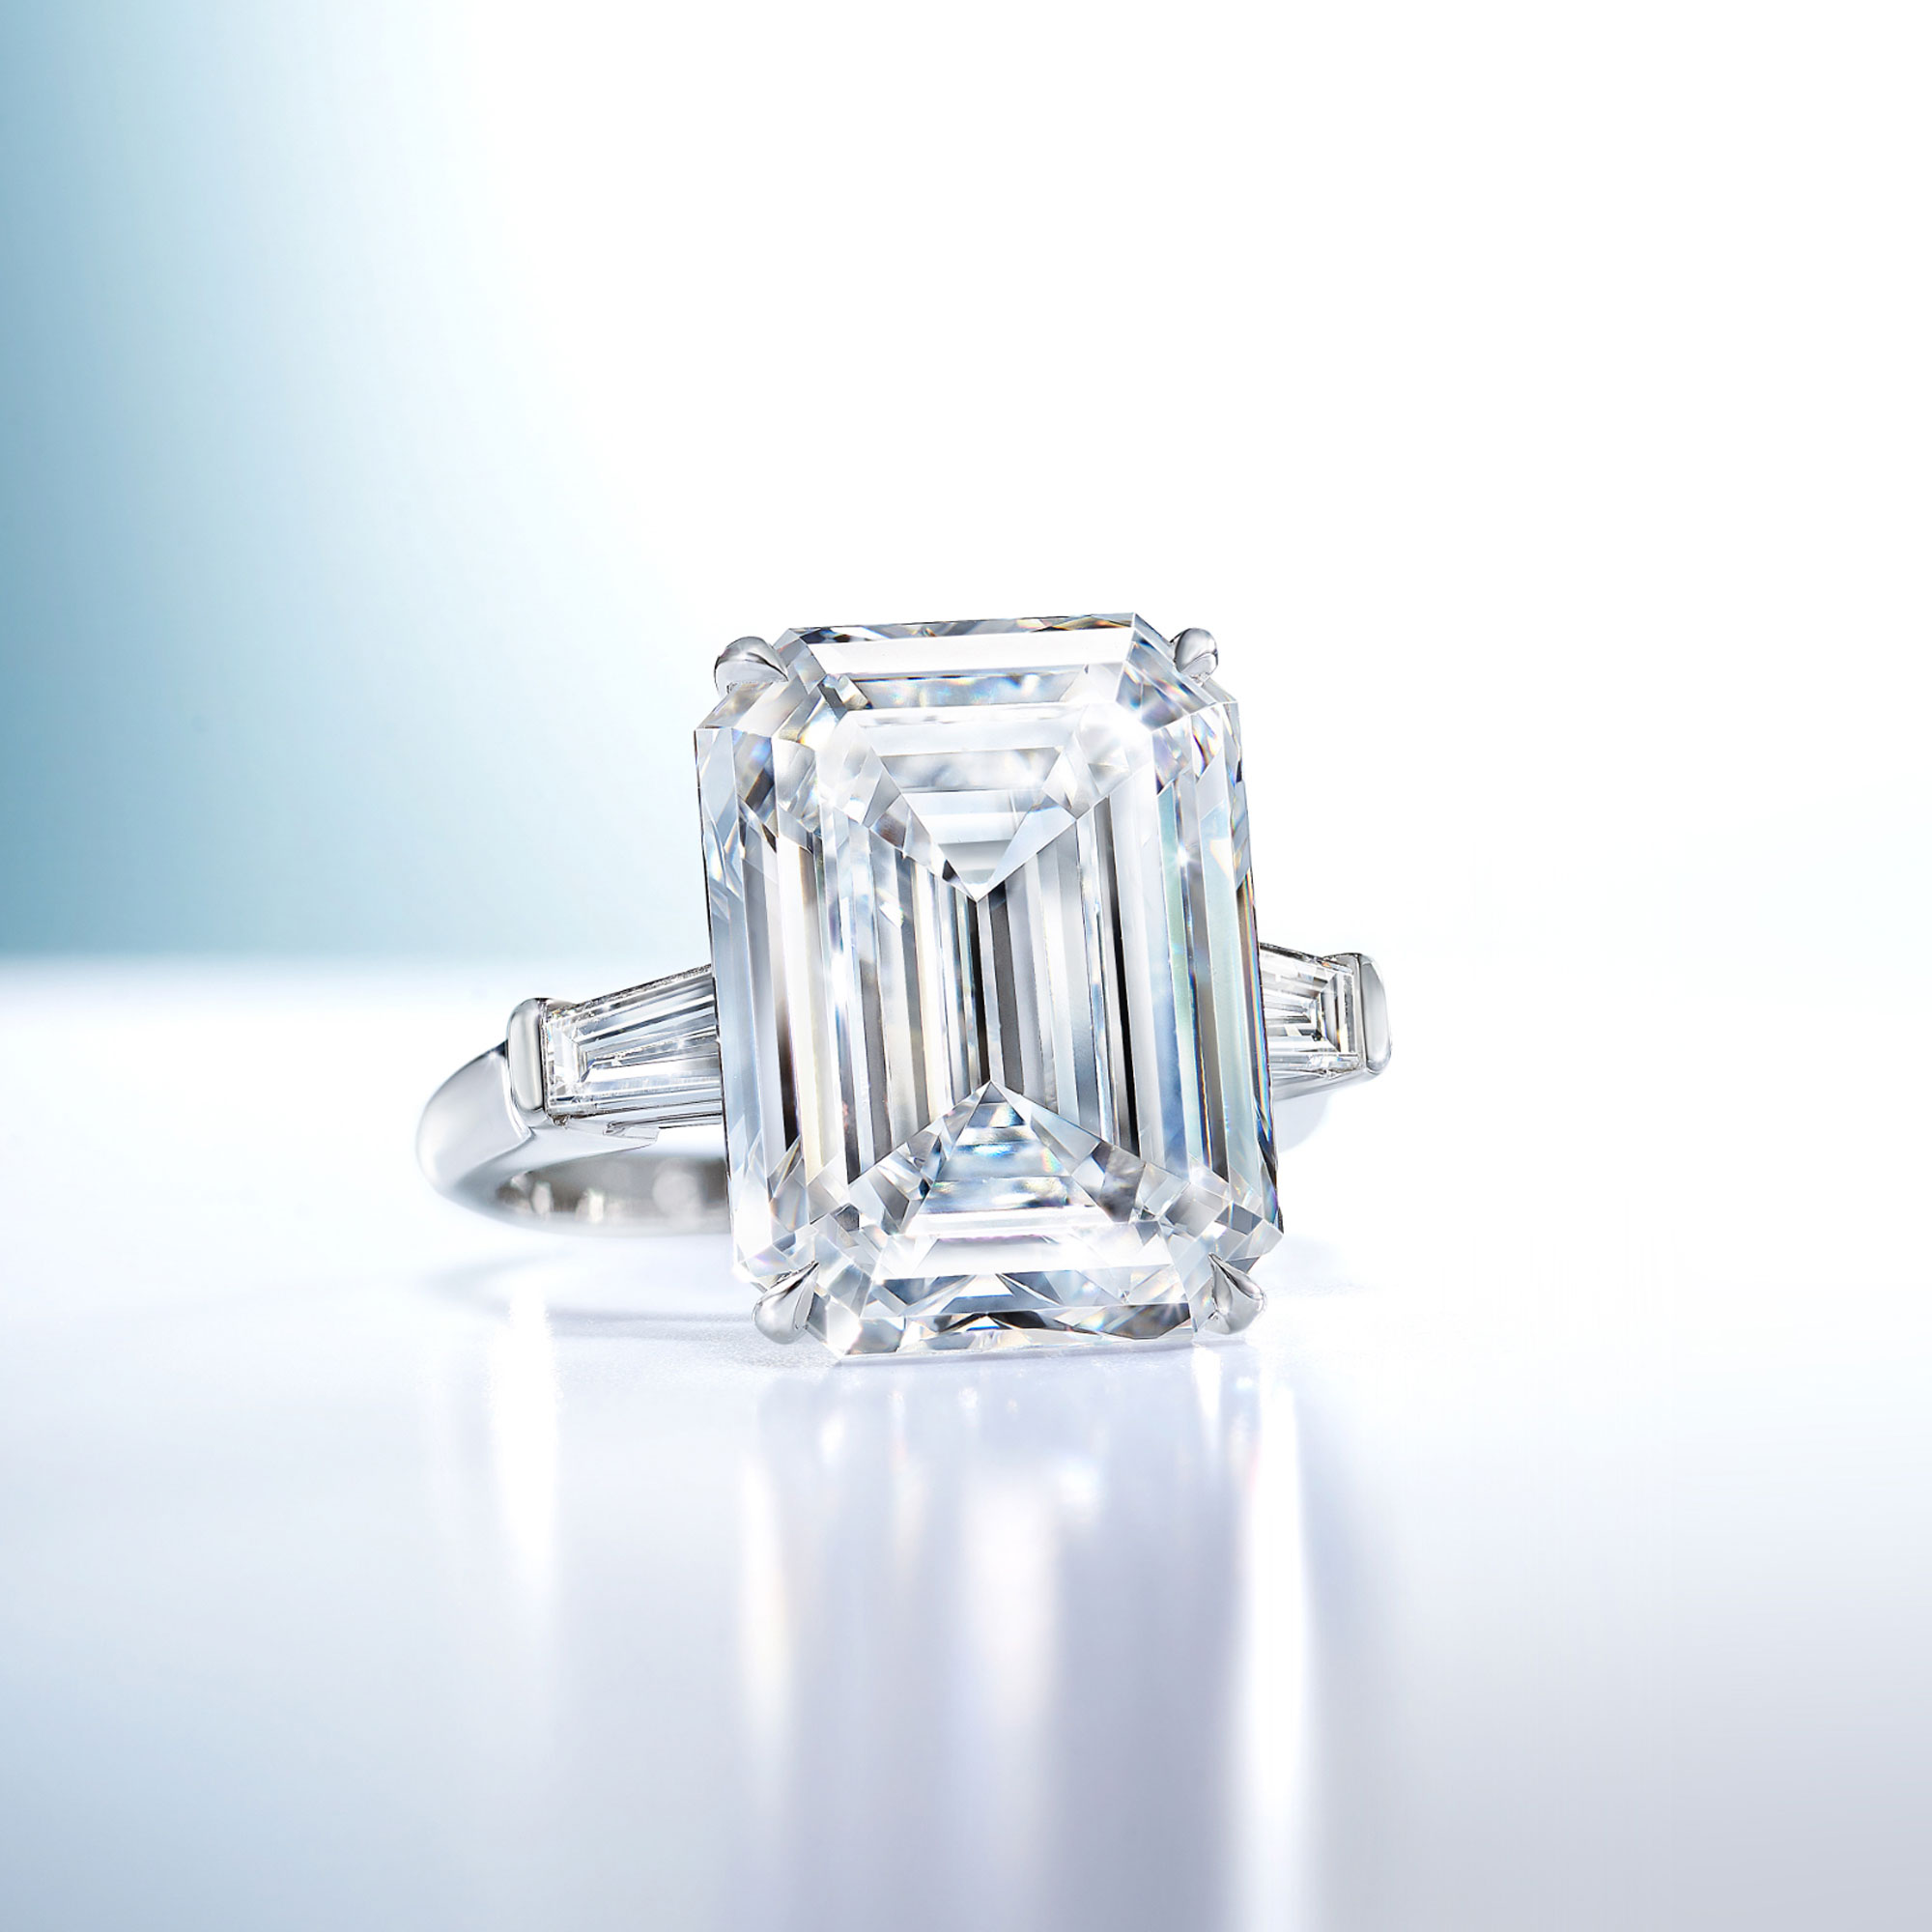 Promise Emerald Cut Diamond Engagement Ring from the Graff bridal collection